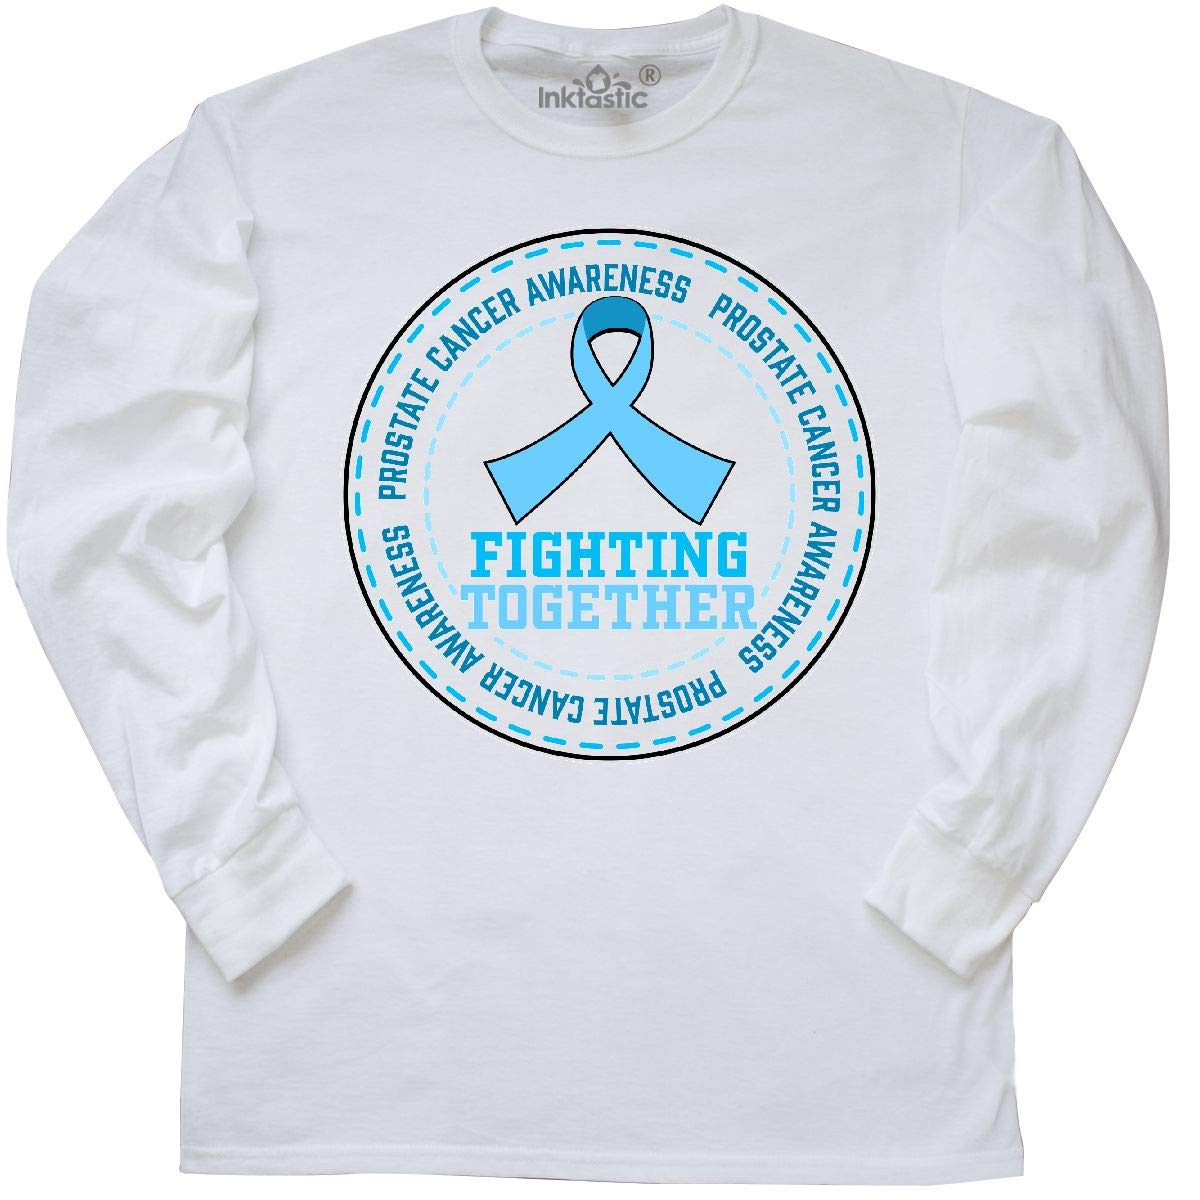 78e930d2 Amazon.com: inktastic - Fighting Together- Prostate Cancer Long Sleeve T- Shirt 32194: Clothing